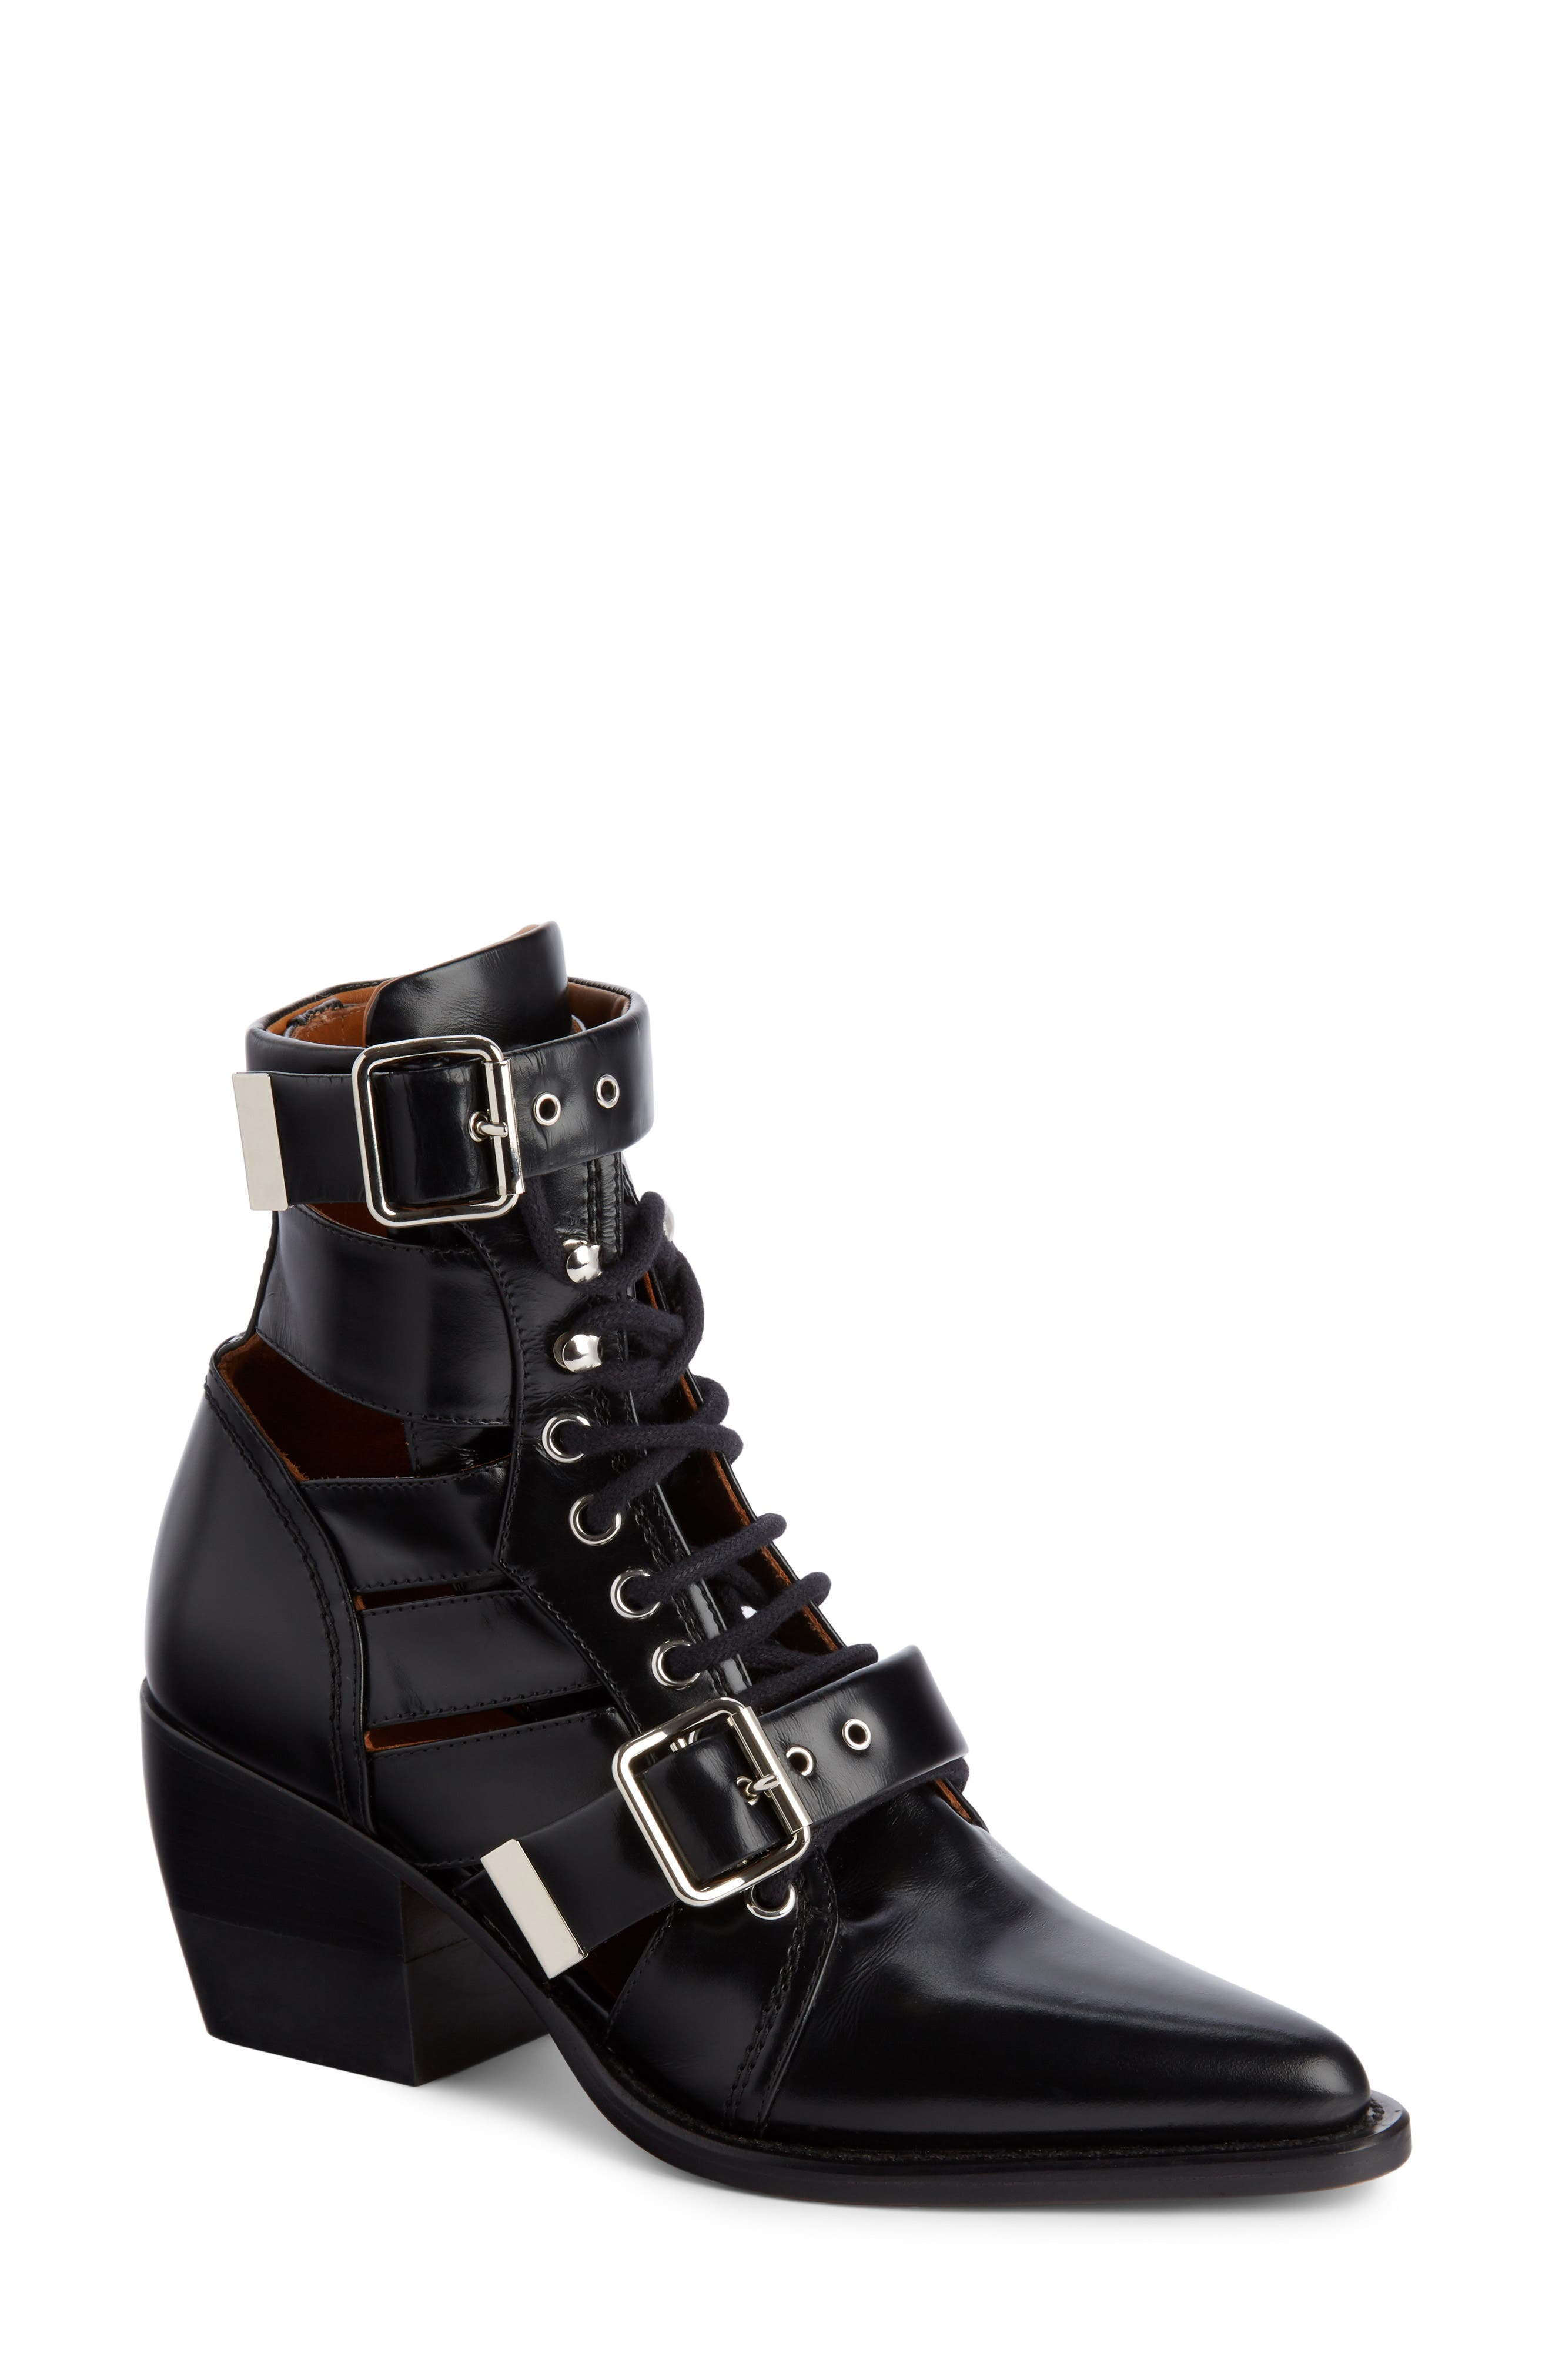 Chloe Rylee Caged Pointy Toe Boot - Black